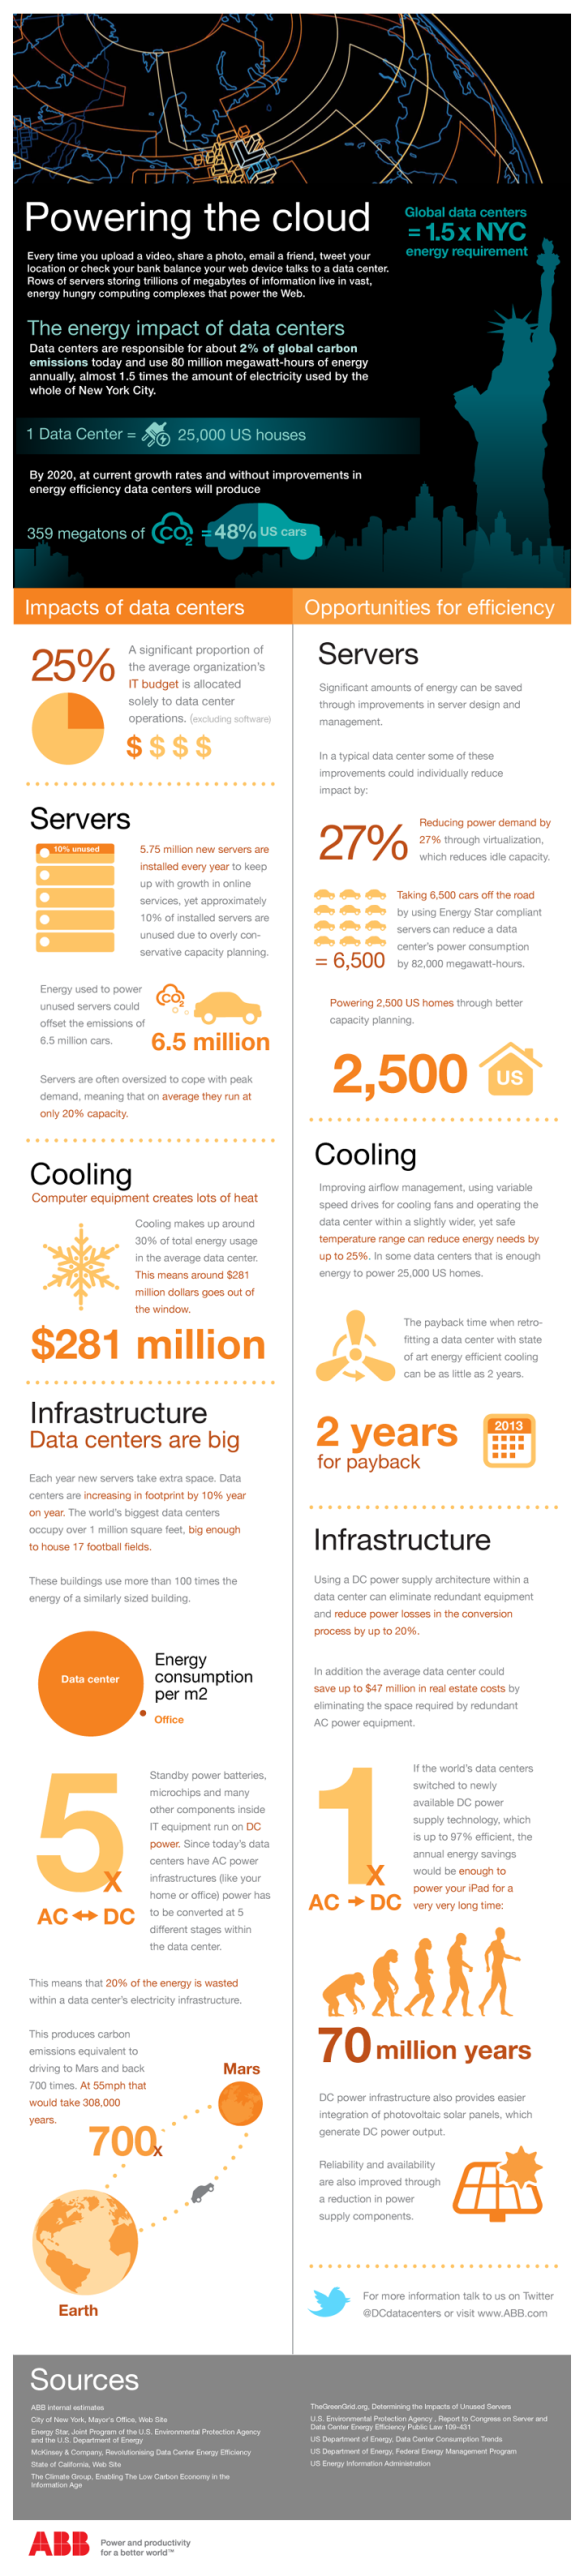 ABB Data Center Infographic